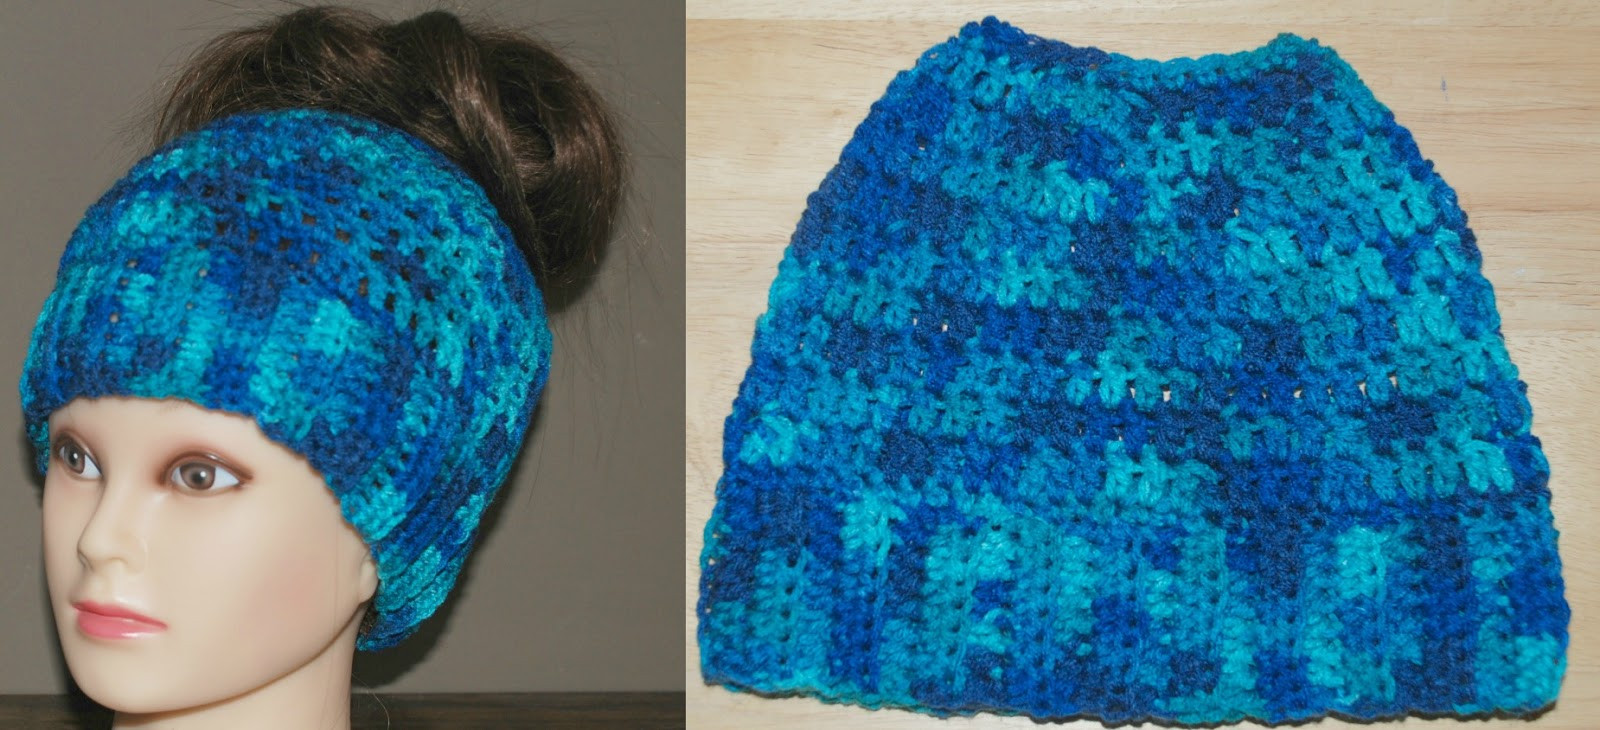 Messy Bun Hat Crochet Pattern Beautiful Amy S Crochet Creative Creations Crochet Messy Bun Hat Of Amazing 47 Images Messy Bun Hat Crochet Pattern